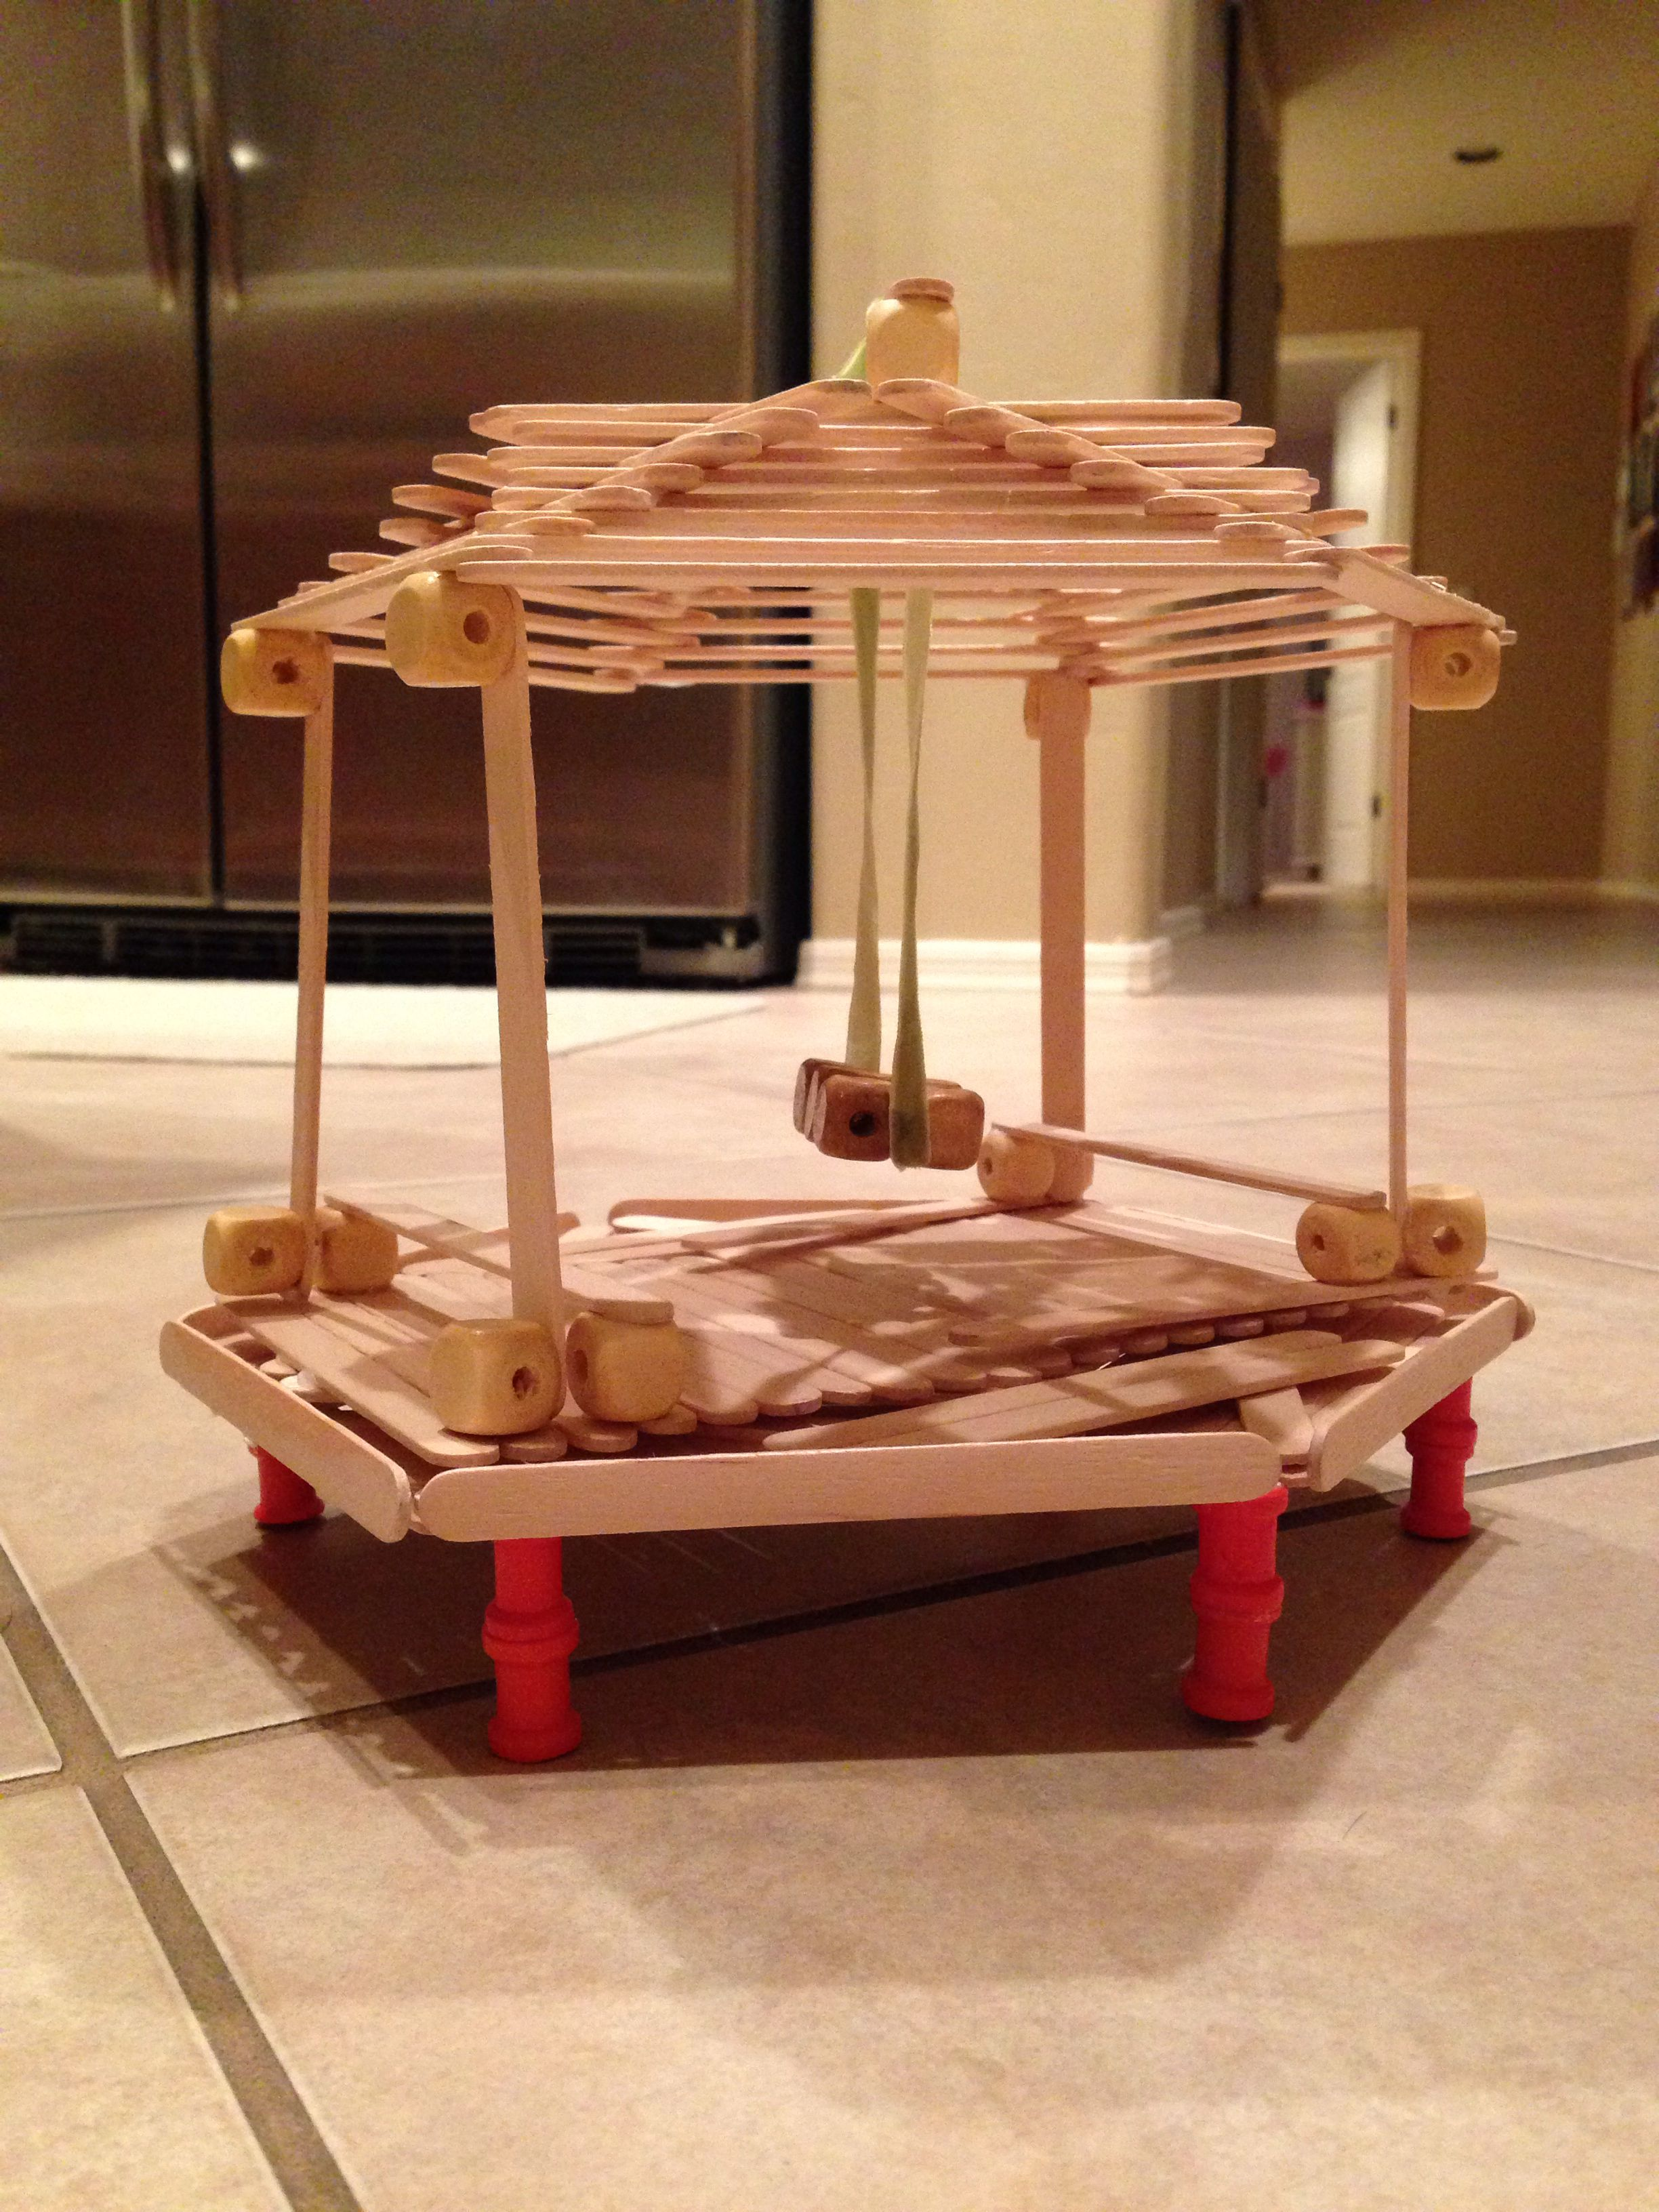 Popsicle stick church craft - Popsicle Stick Gazebo With A Swing And Two Benches Raised Off The Ground Diy With